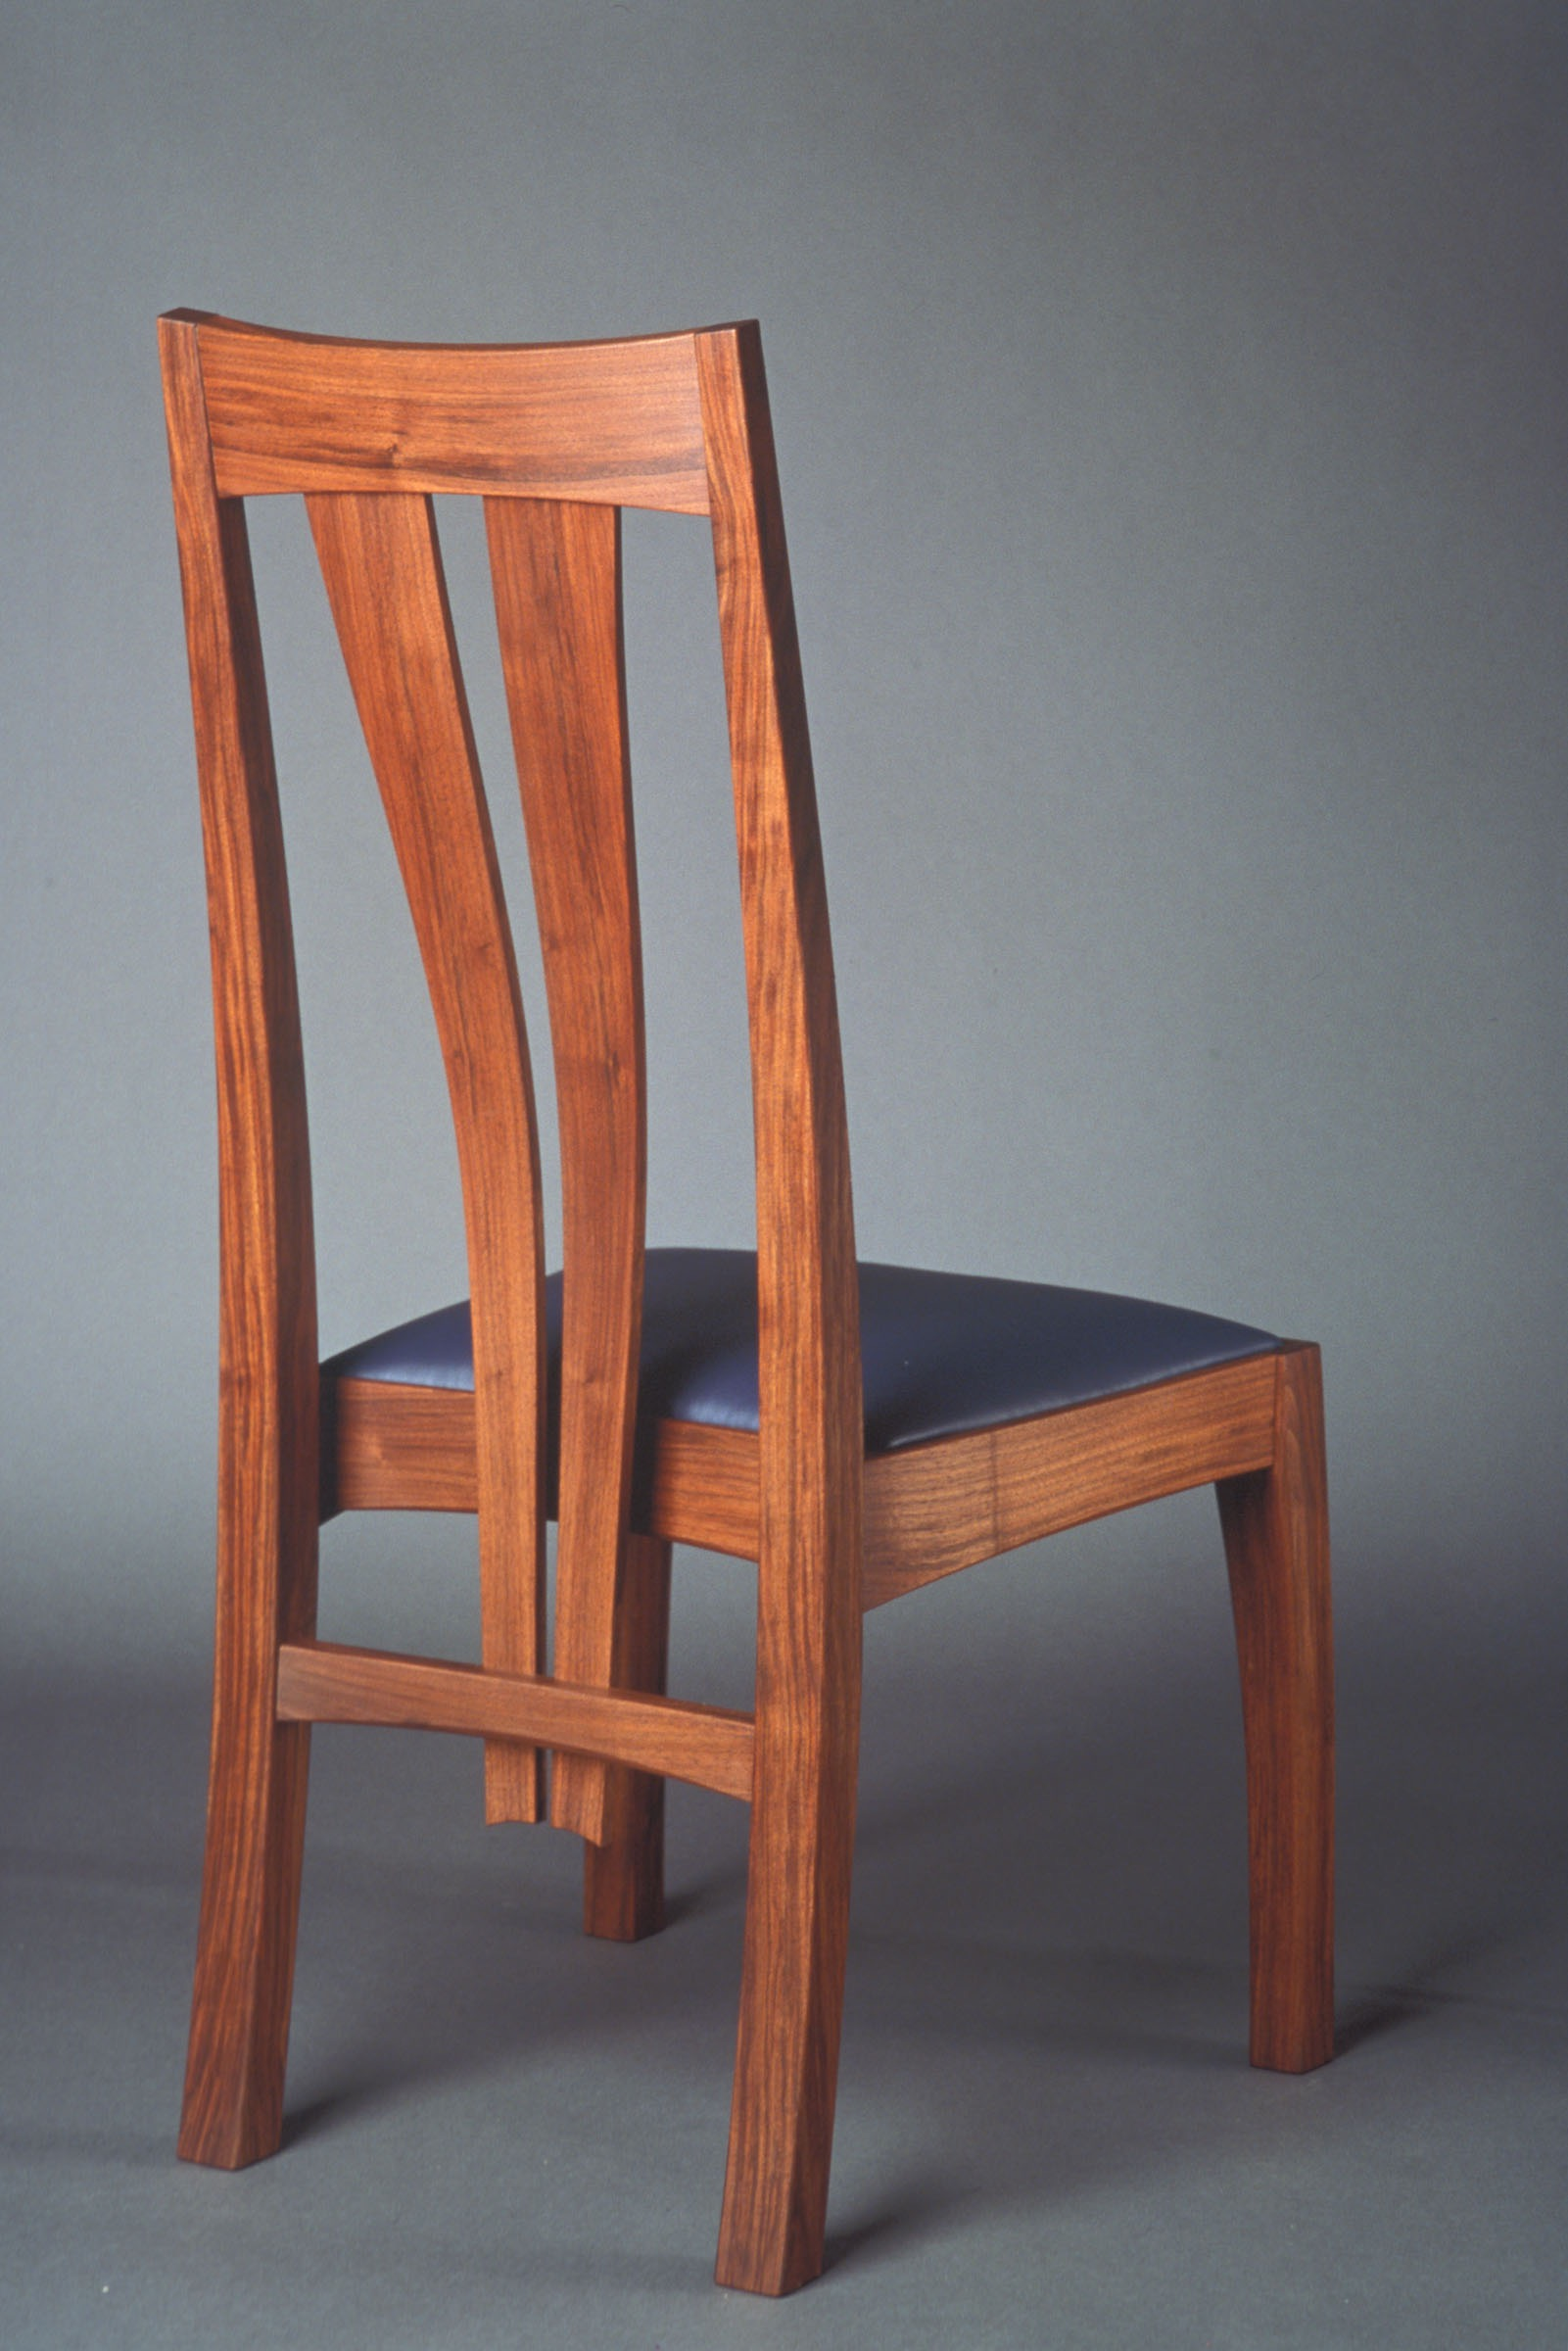 Walnut dining chair with bent laminated back, marquetry and leather upholstery